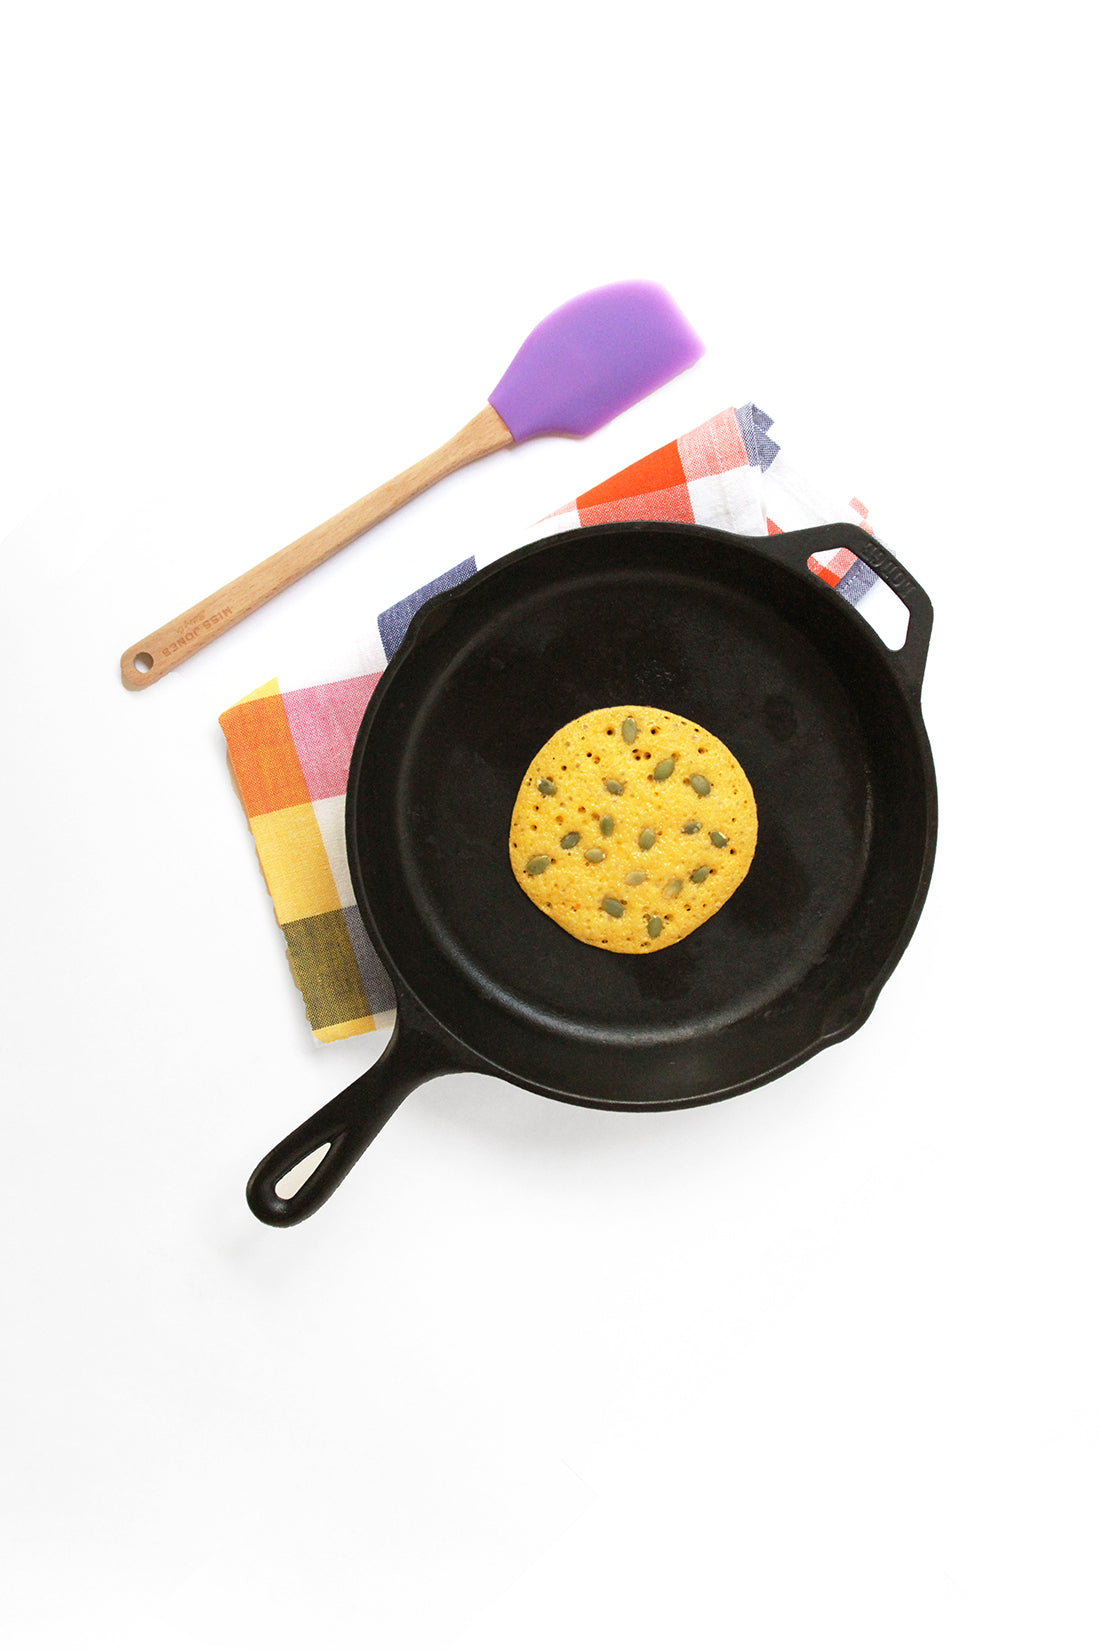 Image from above of a Miss Jones Baking Co Pumpkin Pancake on a skillet next to a purple spatula